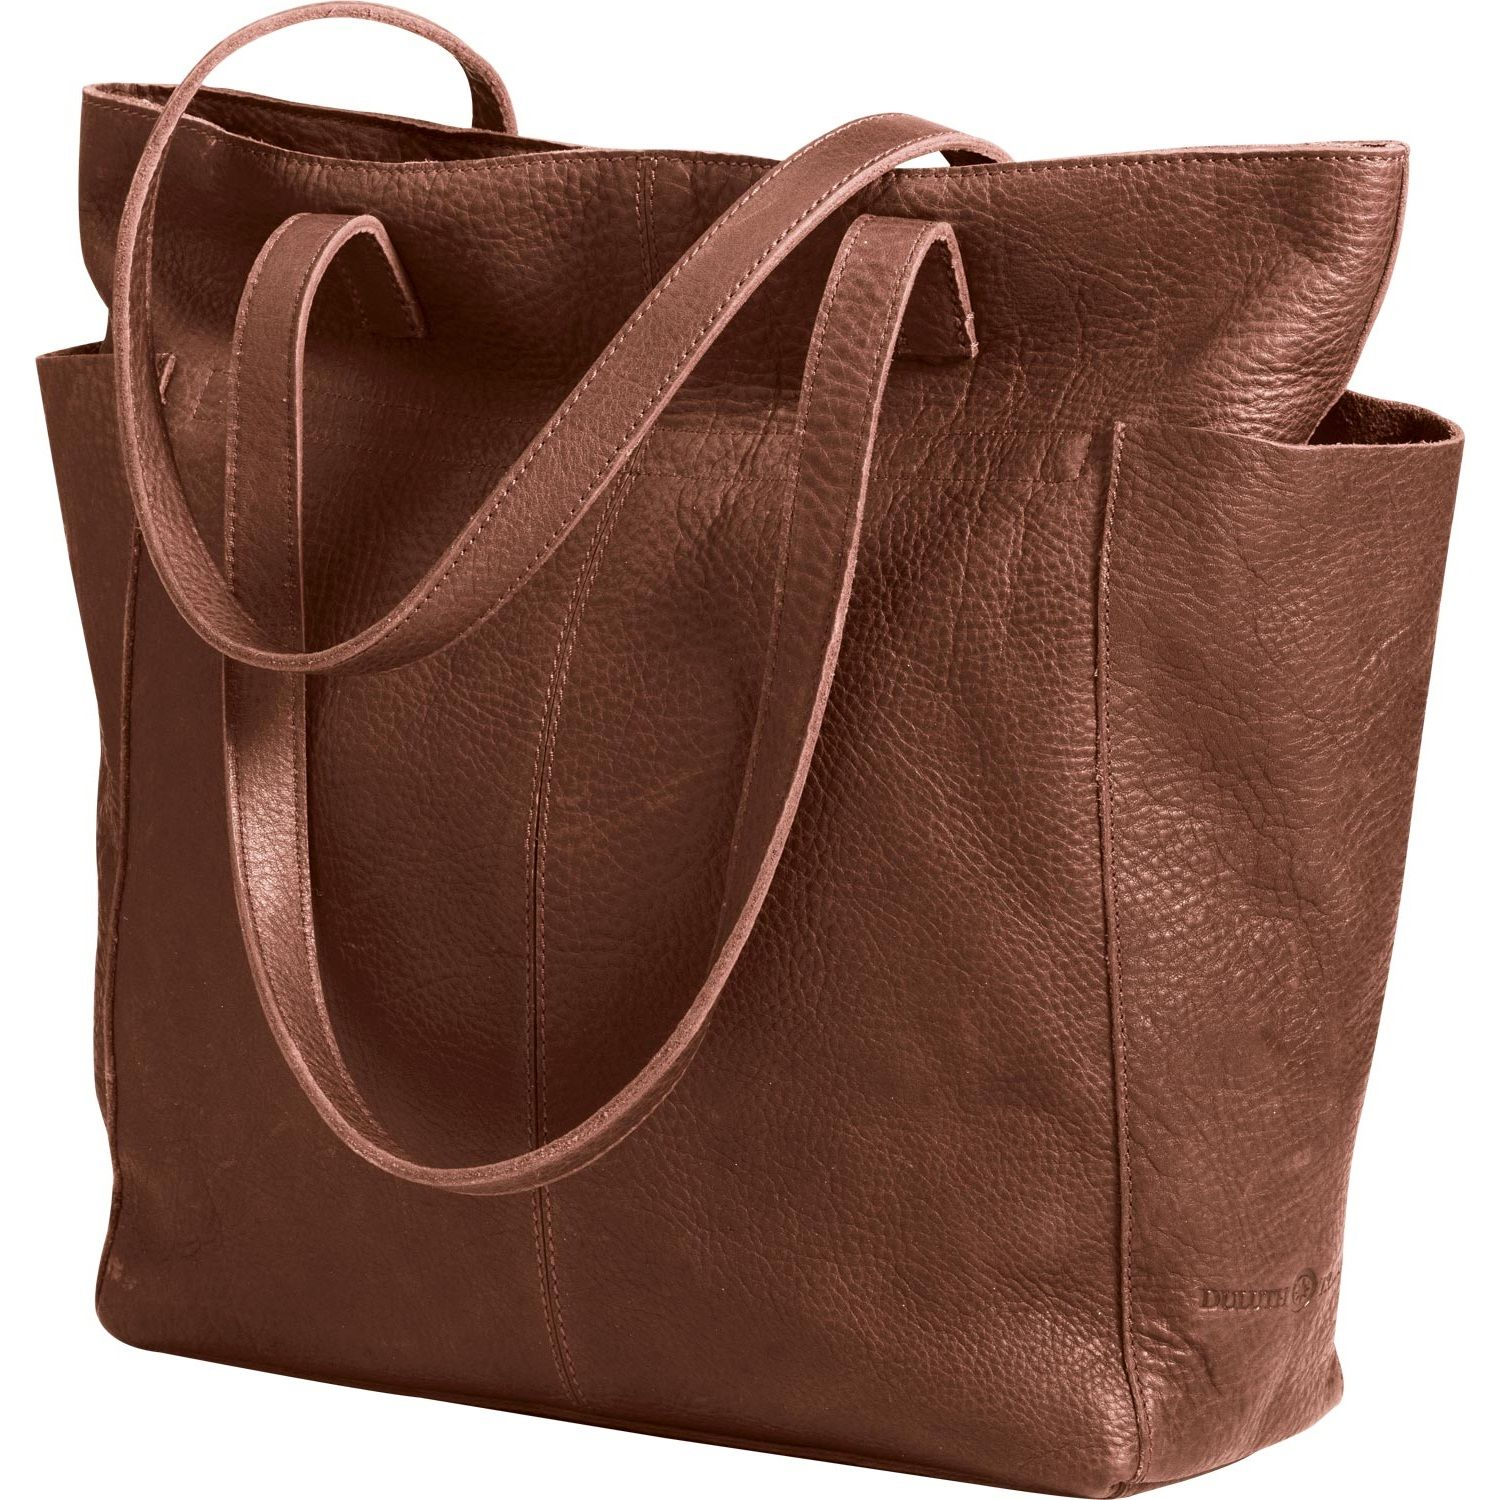 Women's leather tote bags – New Fashion Photo Blog